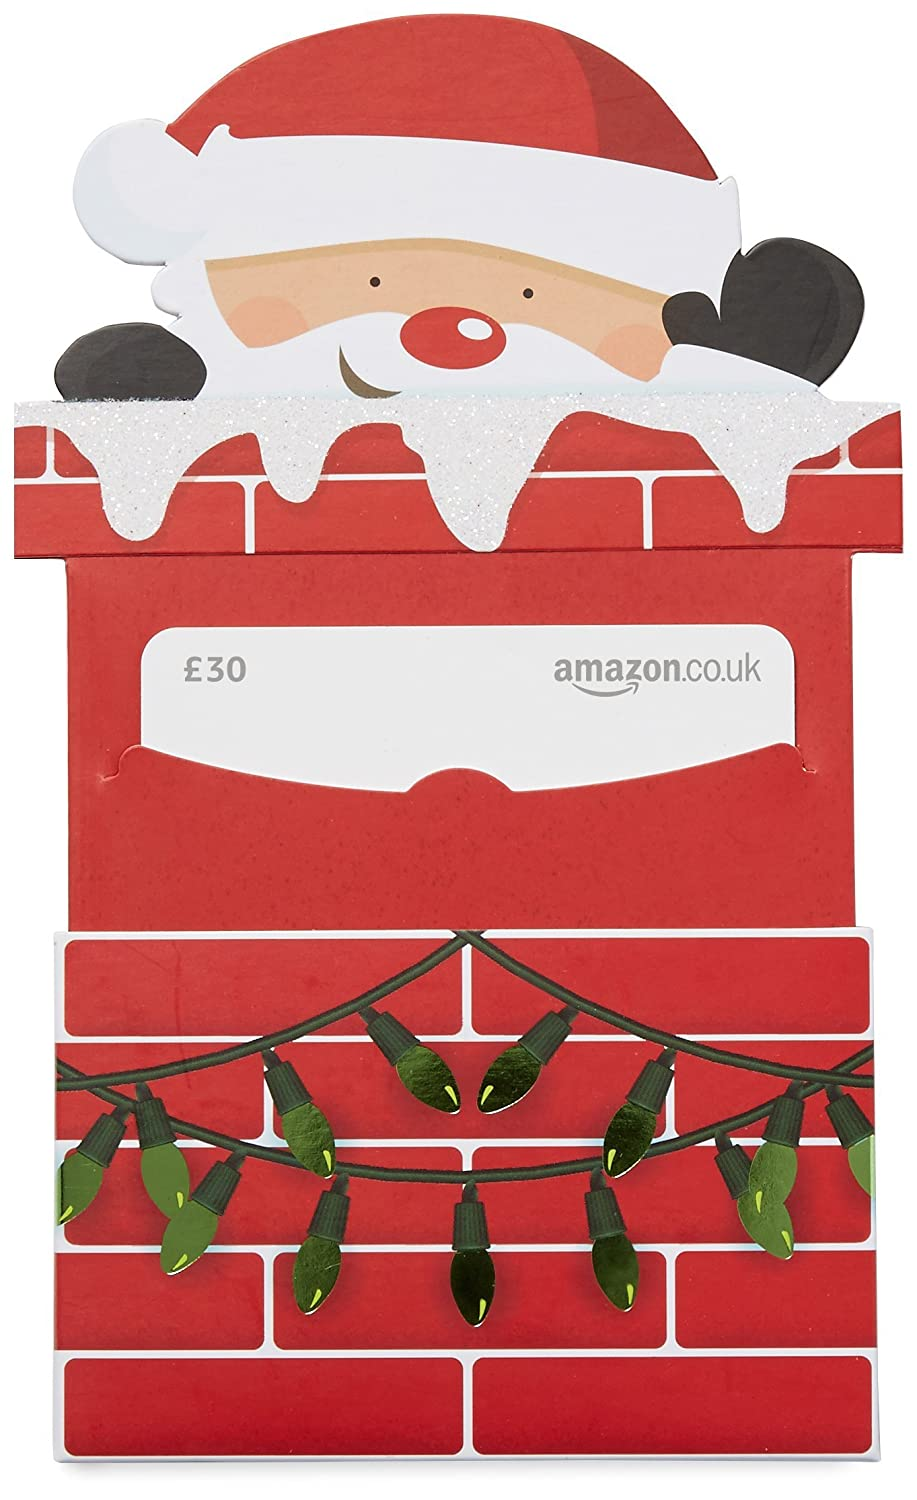 Amazon.co.uk Gift Card for Custom Amount in a Santa Chimney Reveal - FREE One-Day Delivery Amazon EU S.à.r.l. VariableDenomination